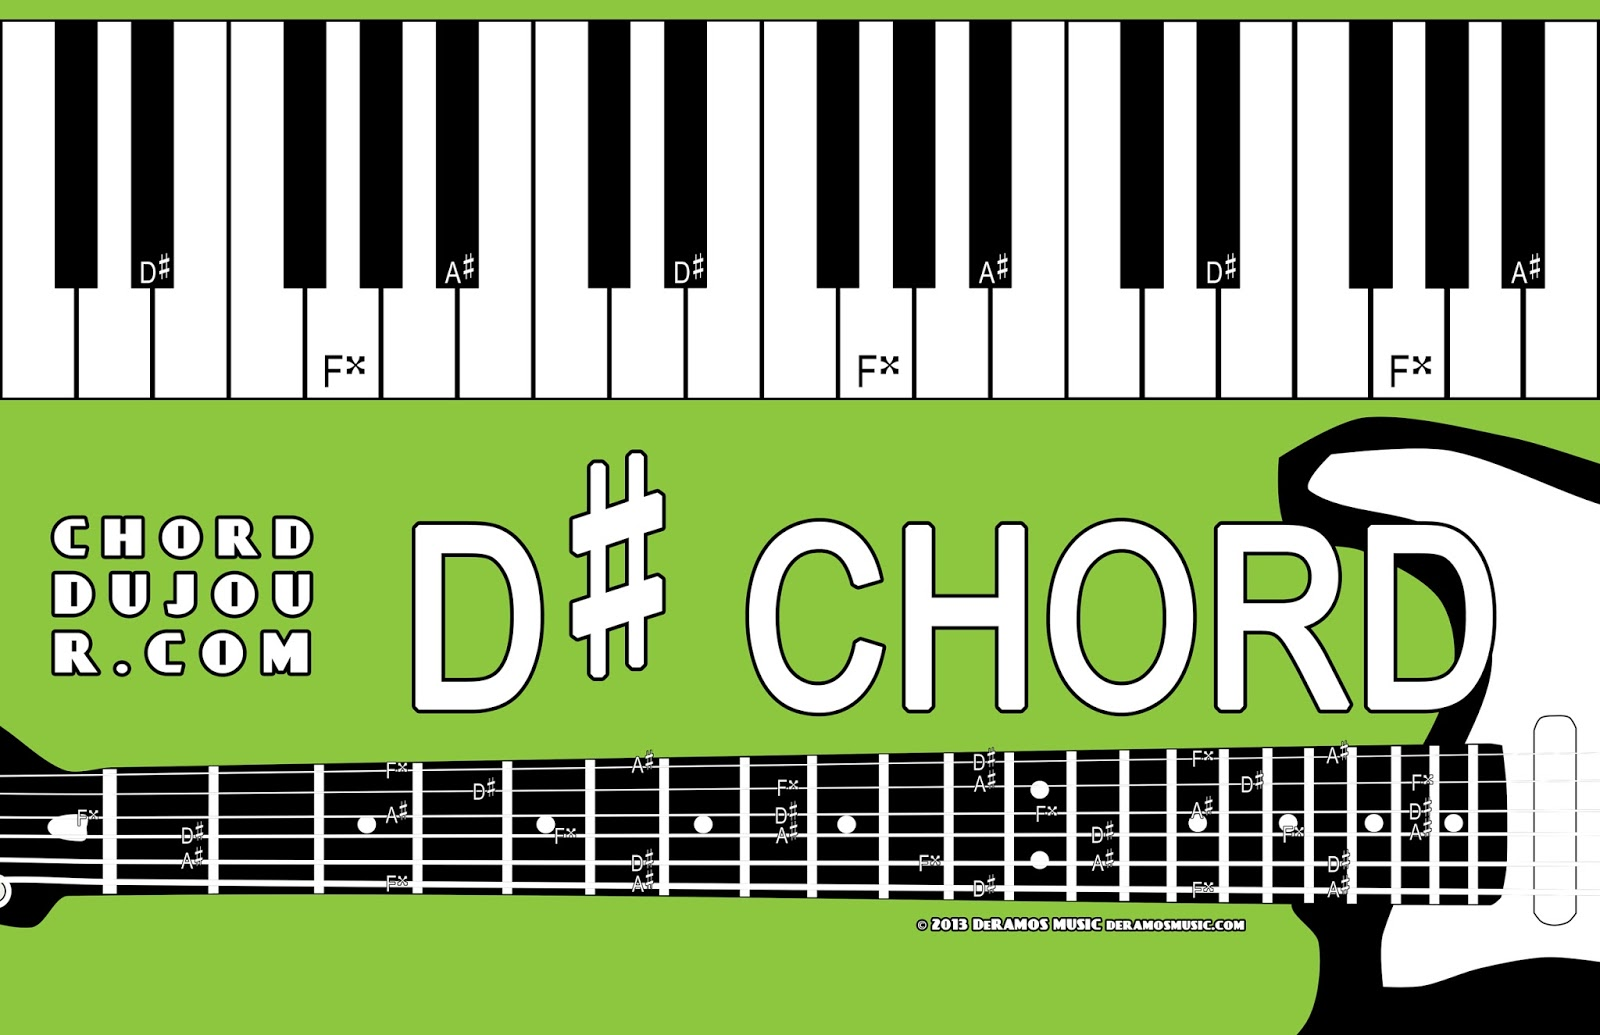 Chord du jour dictionary d chord dictionary d chord hexwebz Image collections